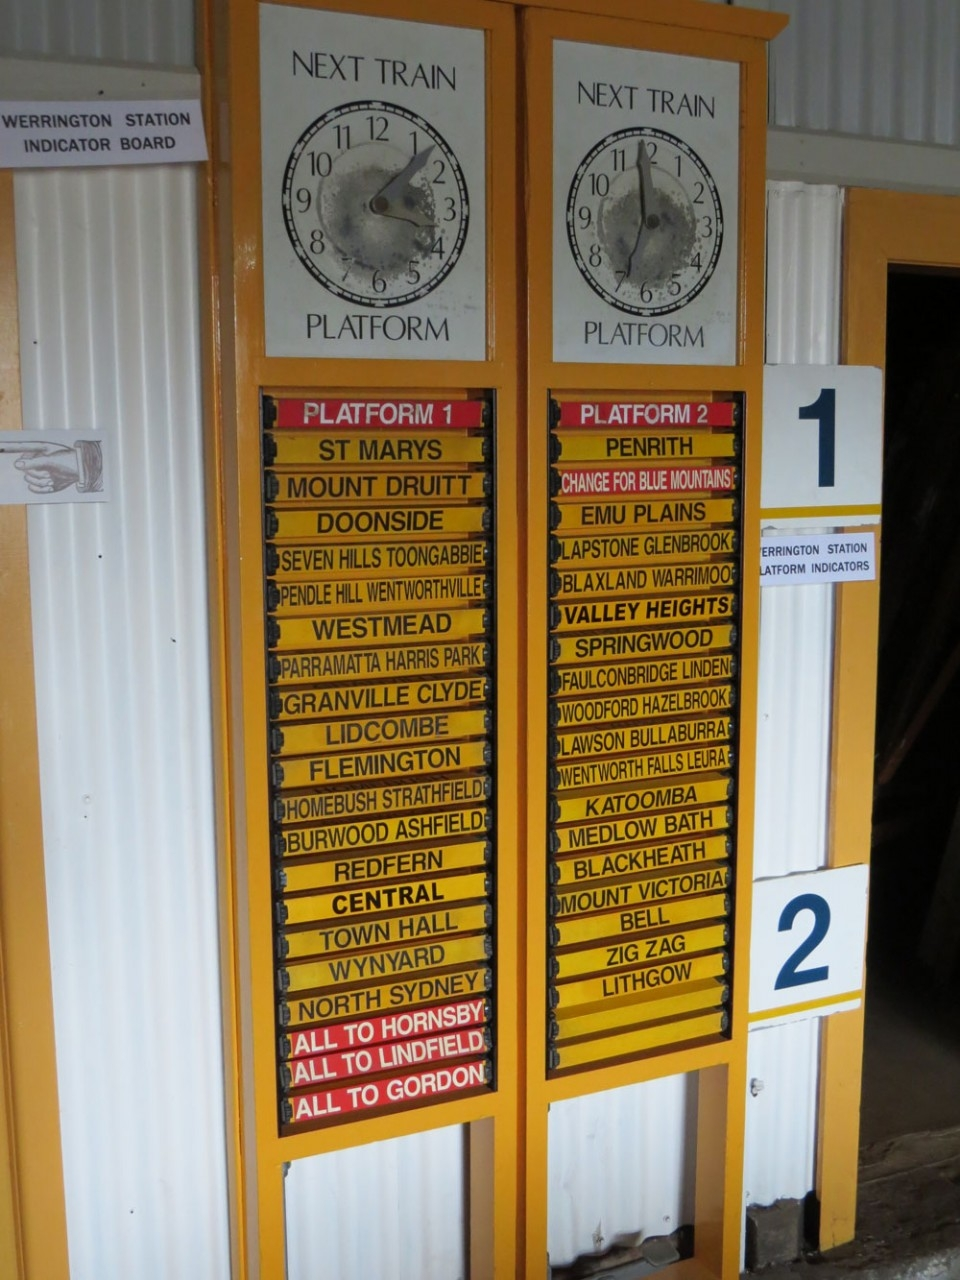 Indicator Board - Photo Courtesy of Valley Heights Locomotive Depot Heritage Museum